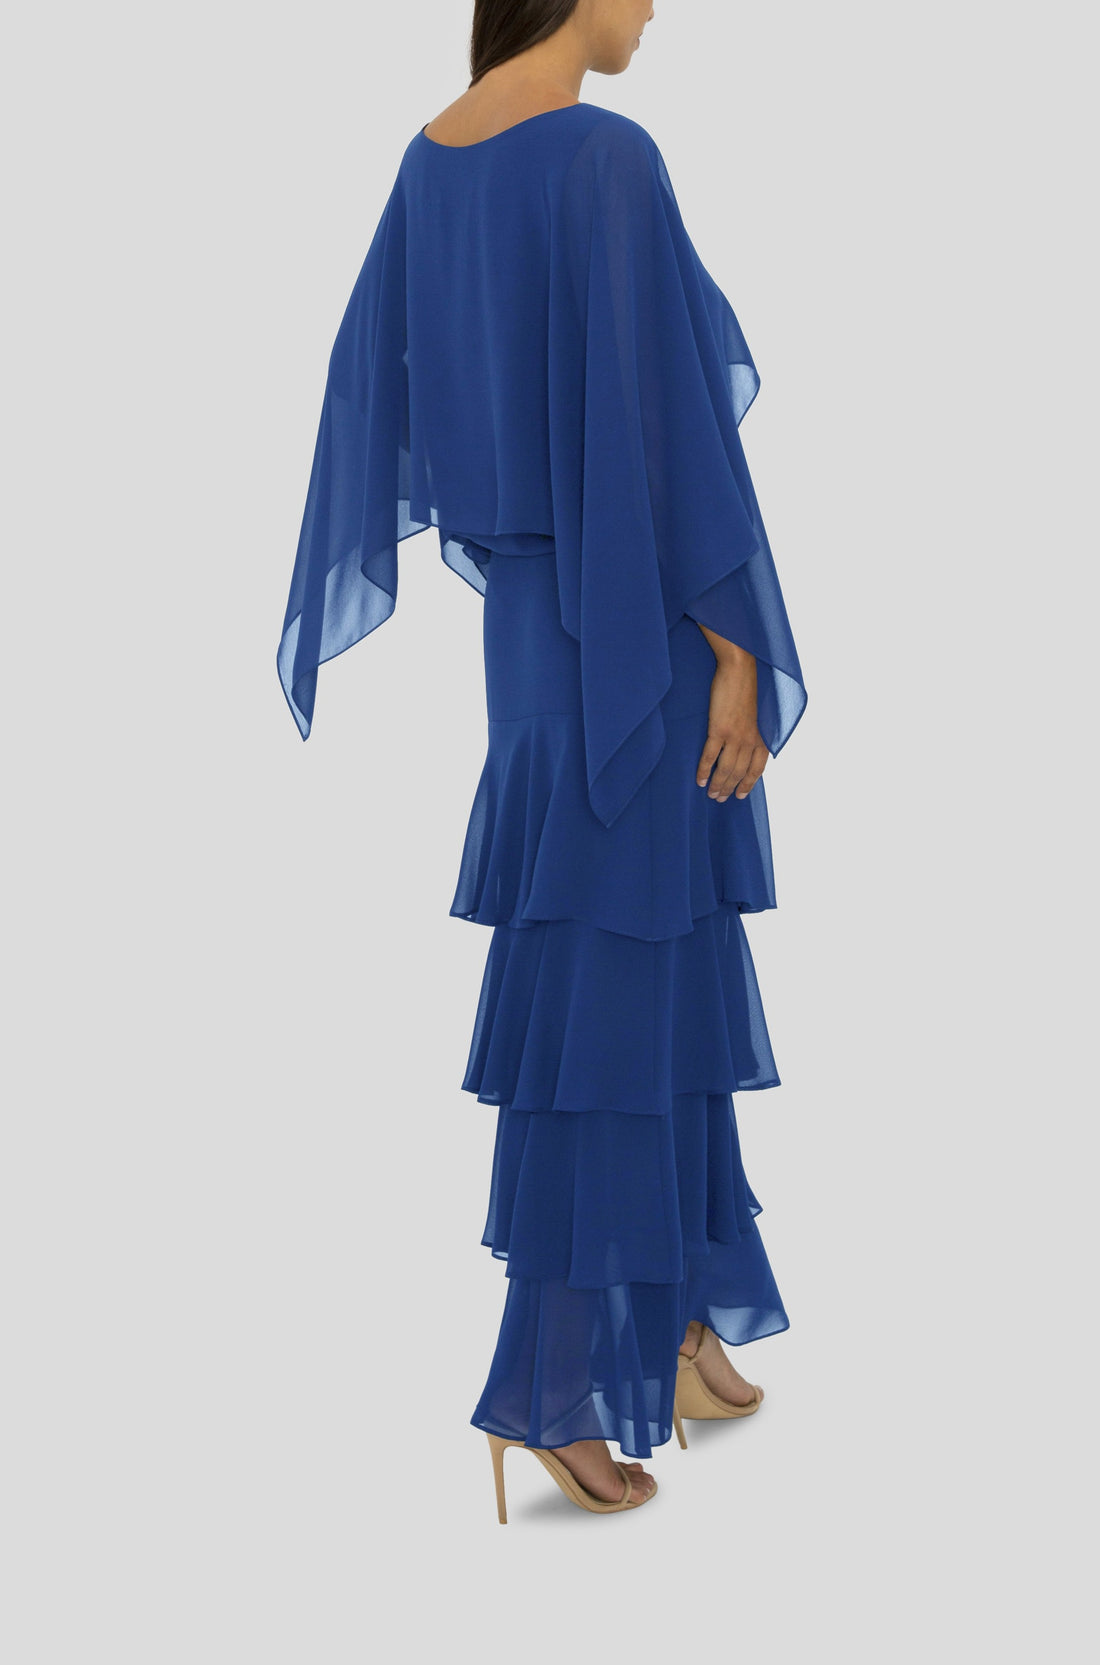 THE COBALT TIERED MAXI SKIRT